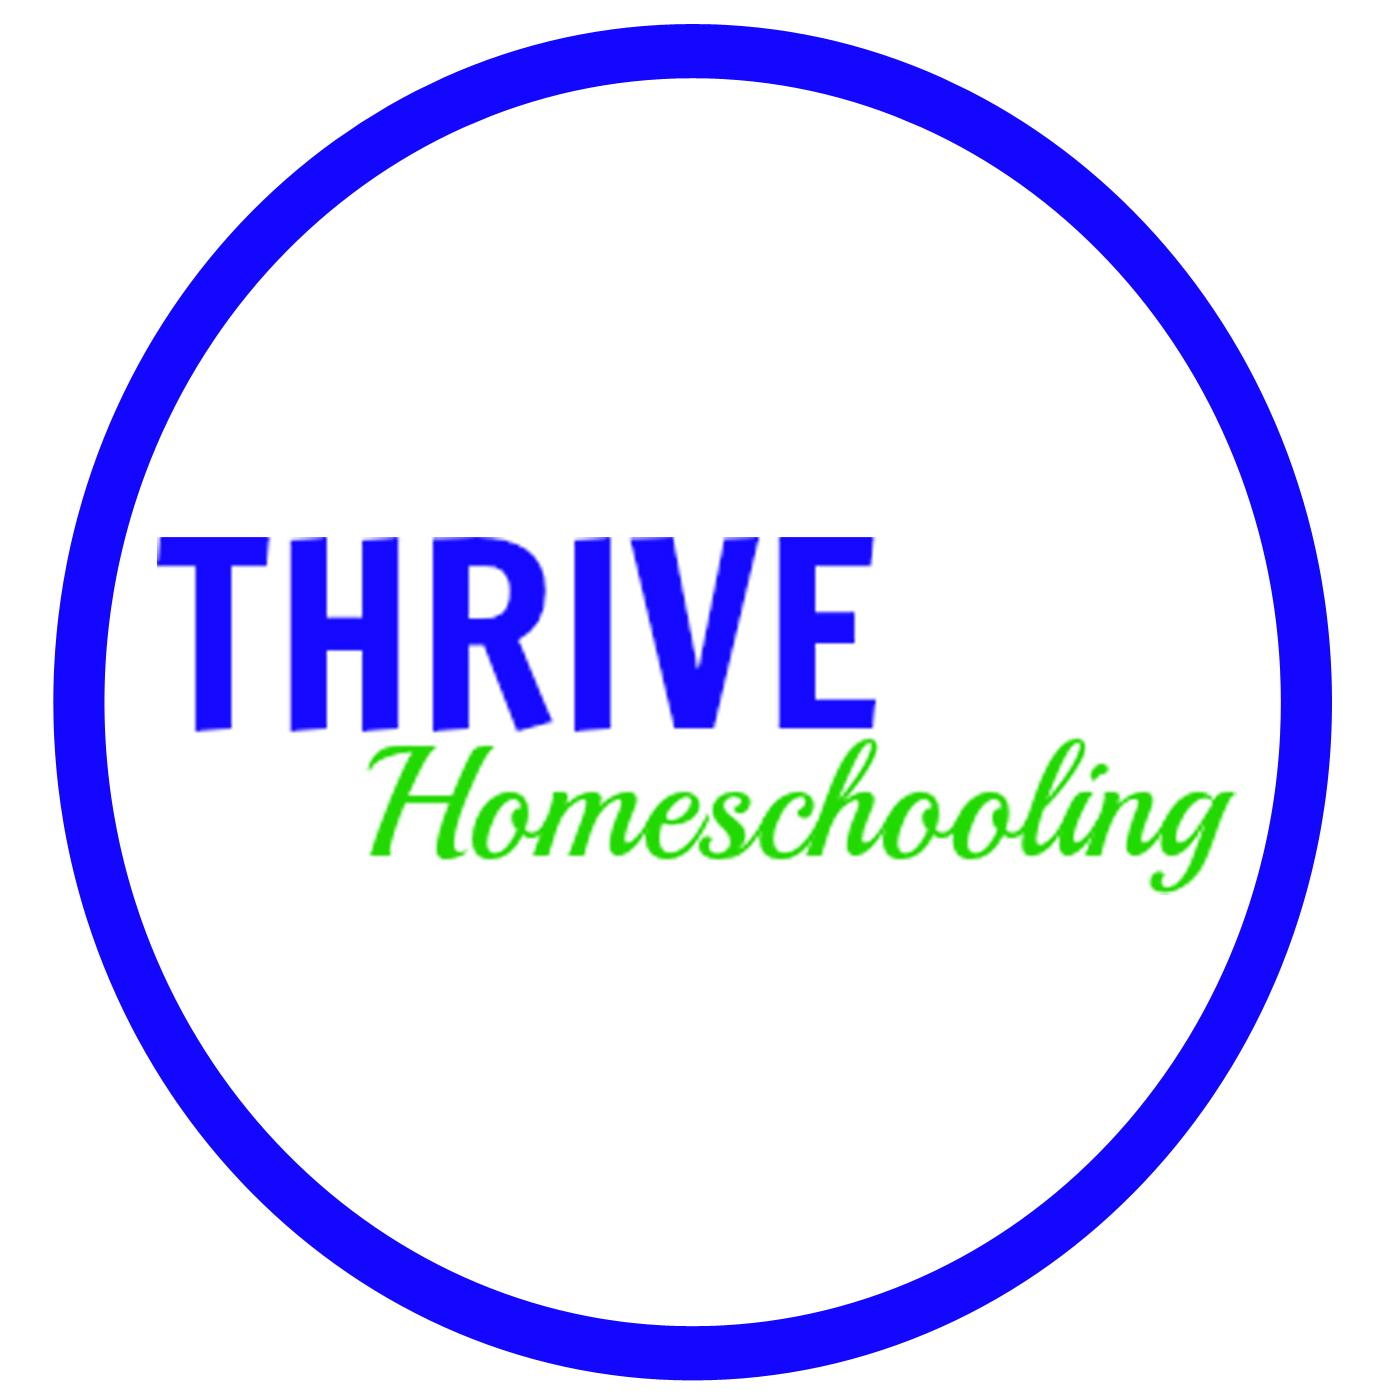 Thrive Homeschooling | Listen Free on Castbox